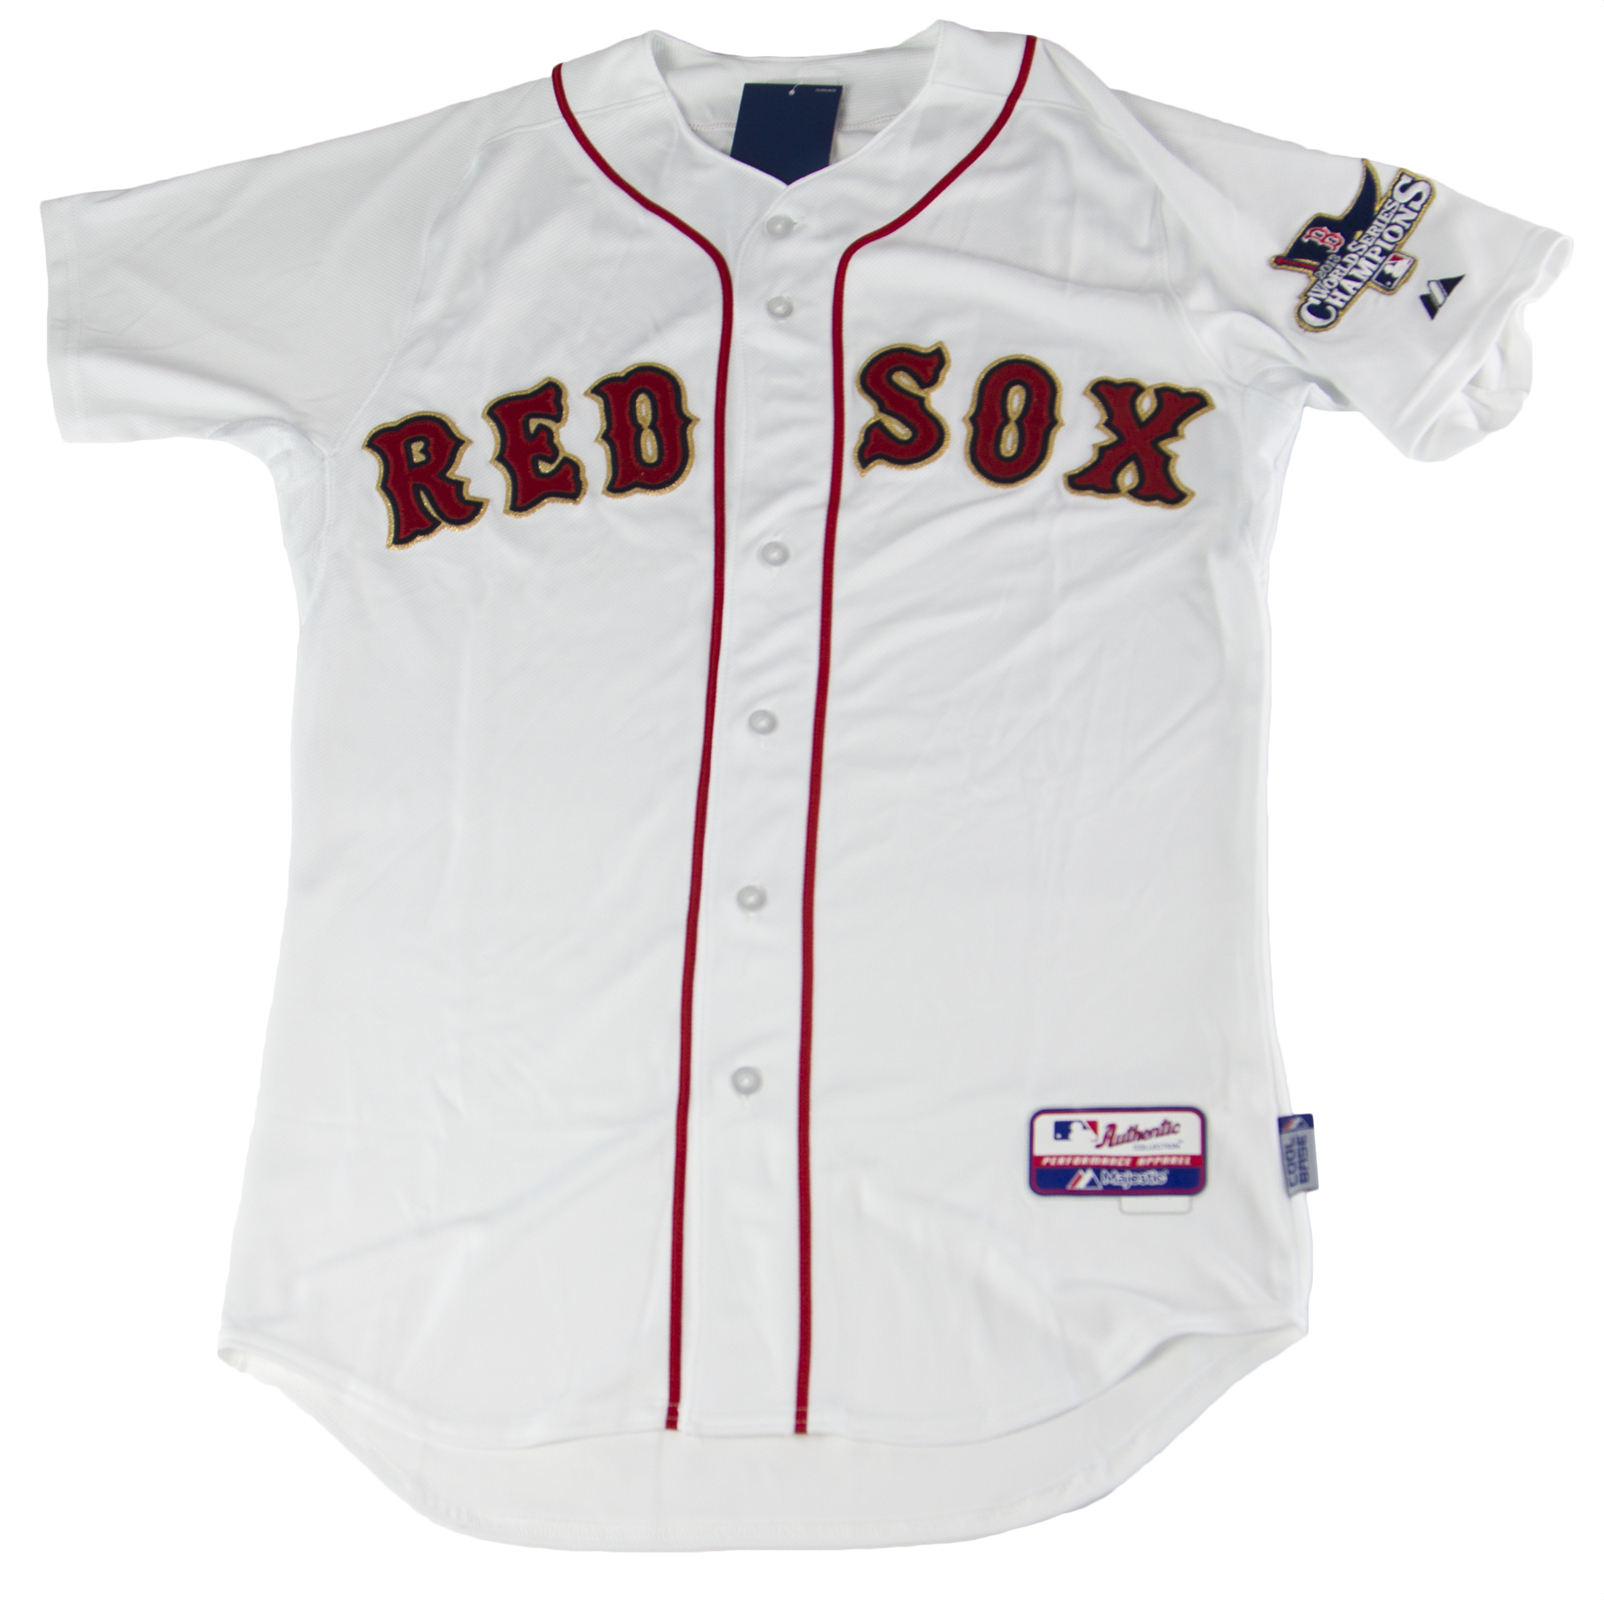 c1f234b02f6 MAJESTIC Men s White Boston Red Sox Cool Base Home Jersey BQ6300 Sz 52  219  NEW